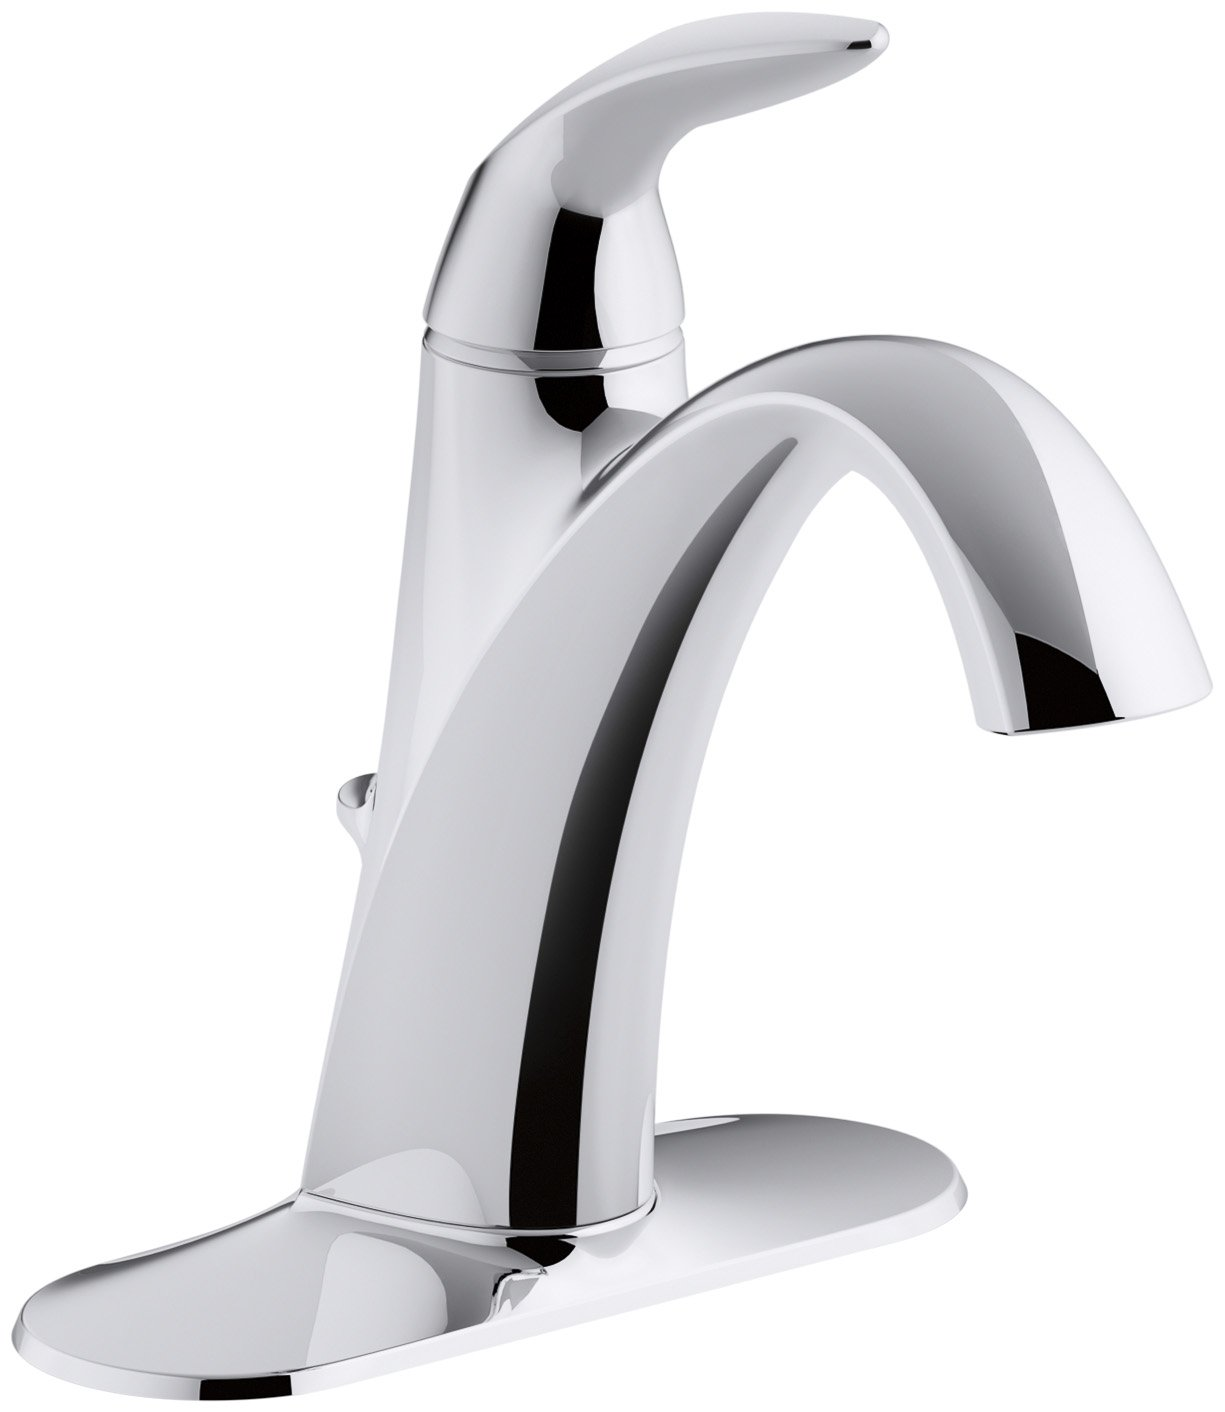 Bathroom Faucet: Kohler Bathroom Faucets Repair Faucet Single Handle Kitchen  K Lg Sink Leaking: